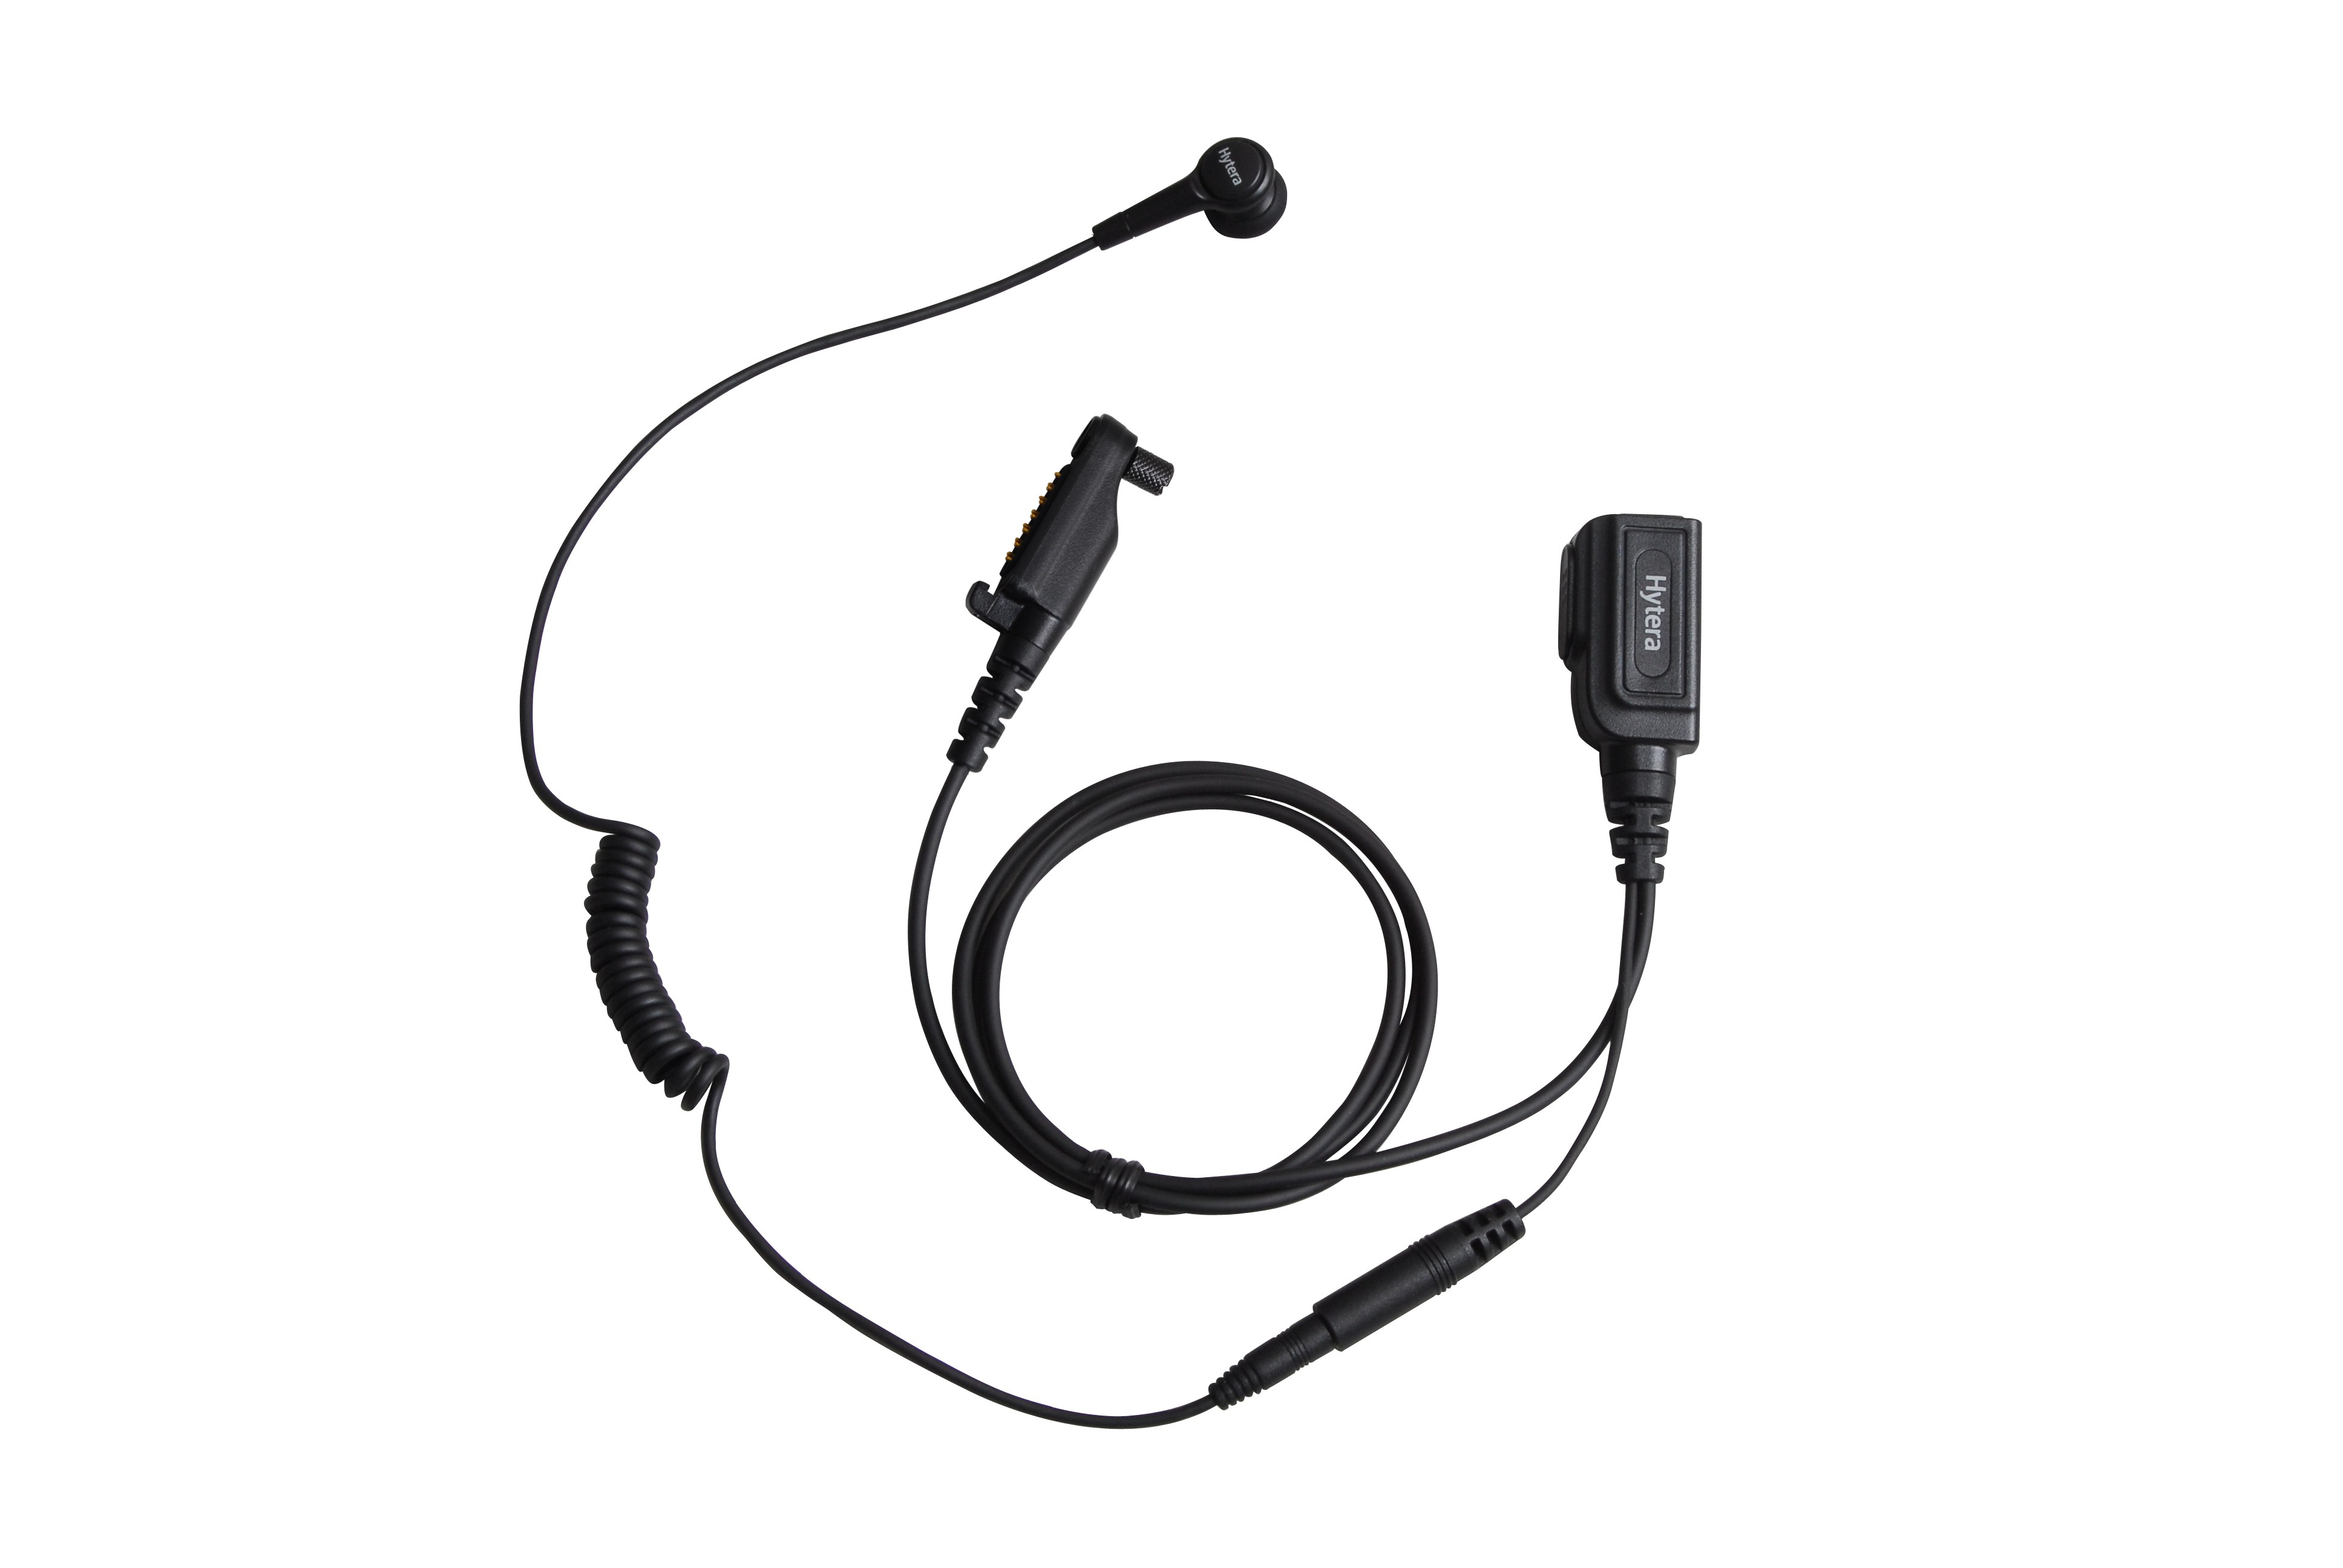 Hytera - Earbud with PTT & MIC Cable